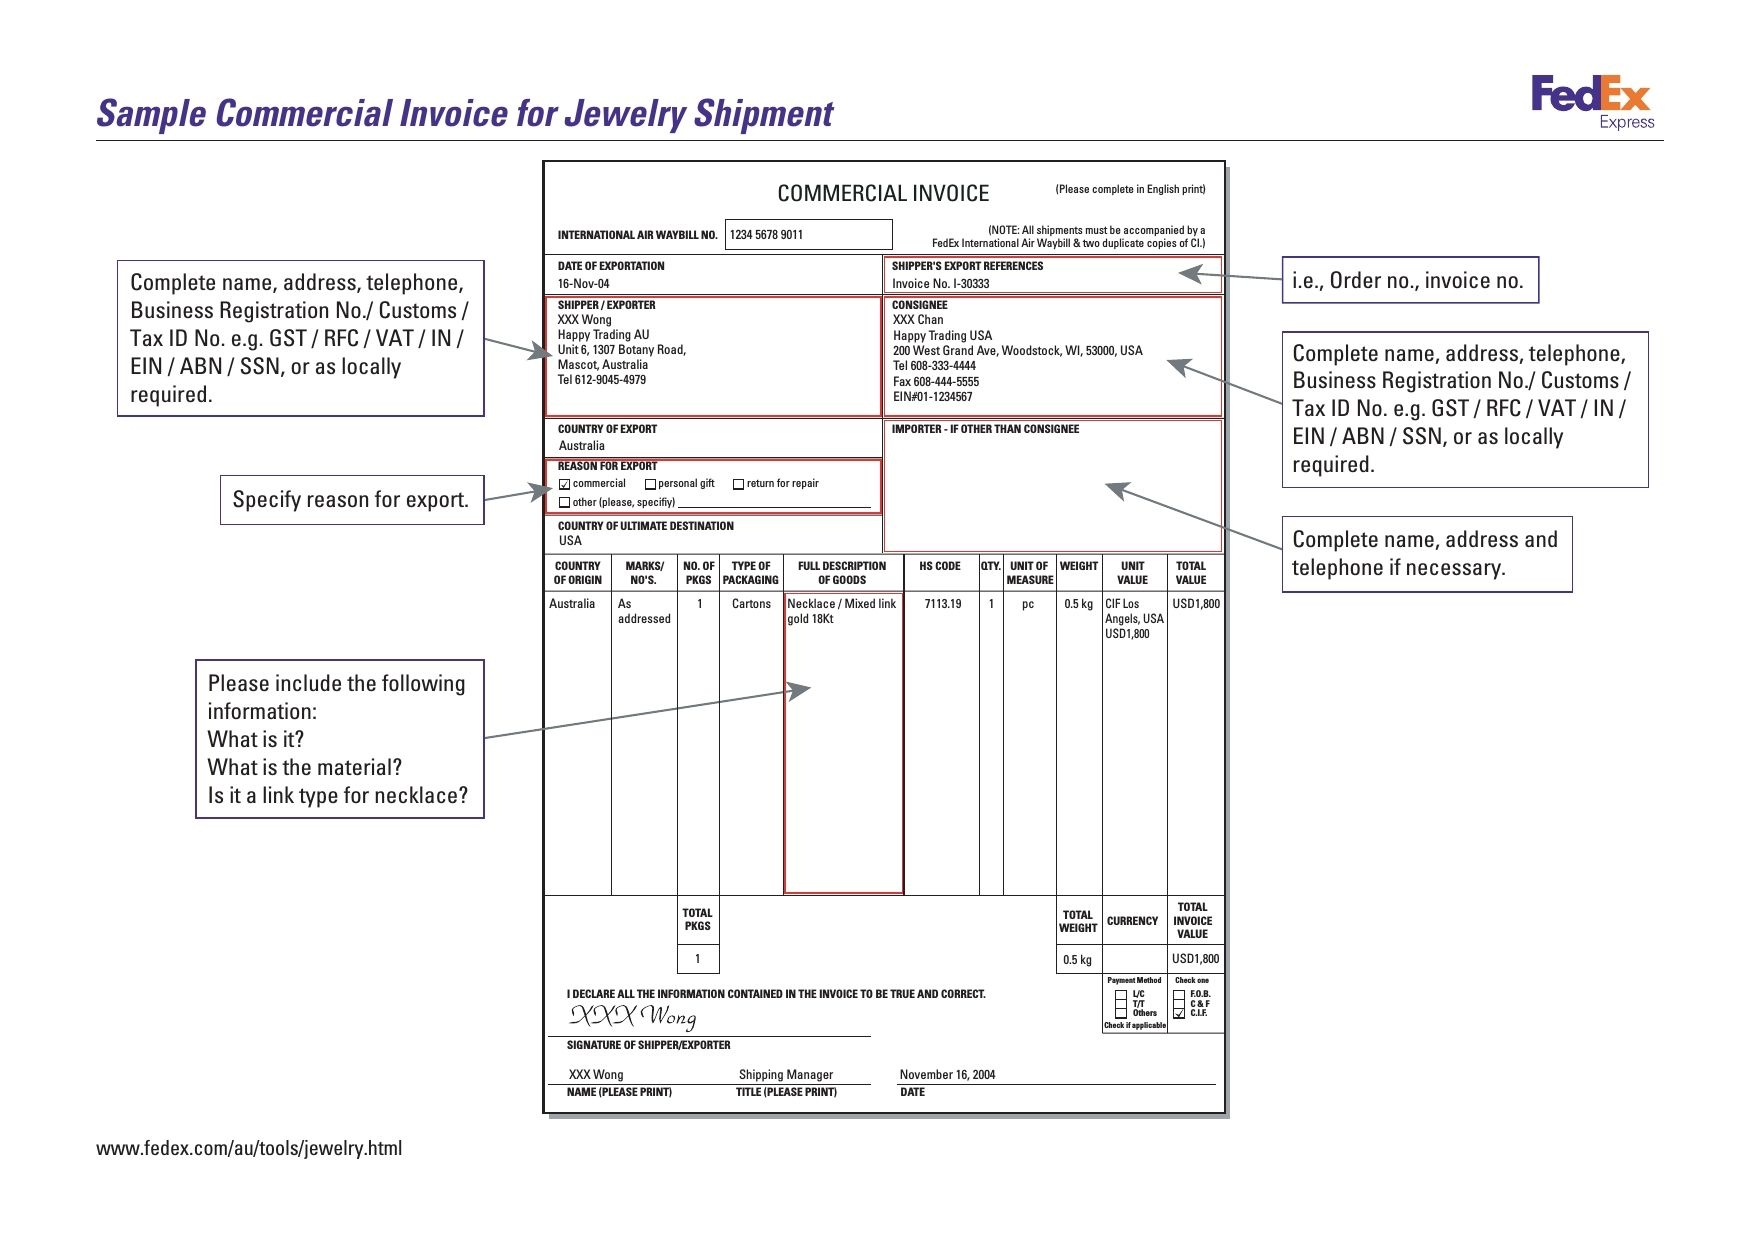 sample commercial invoice for jewelry shipment no commercial invoice no commercial value